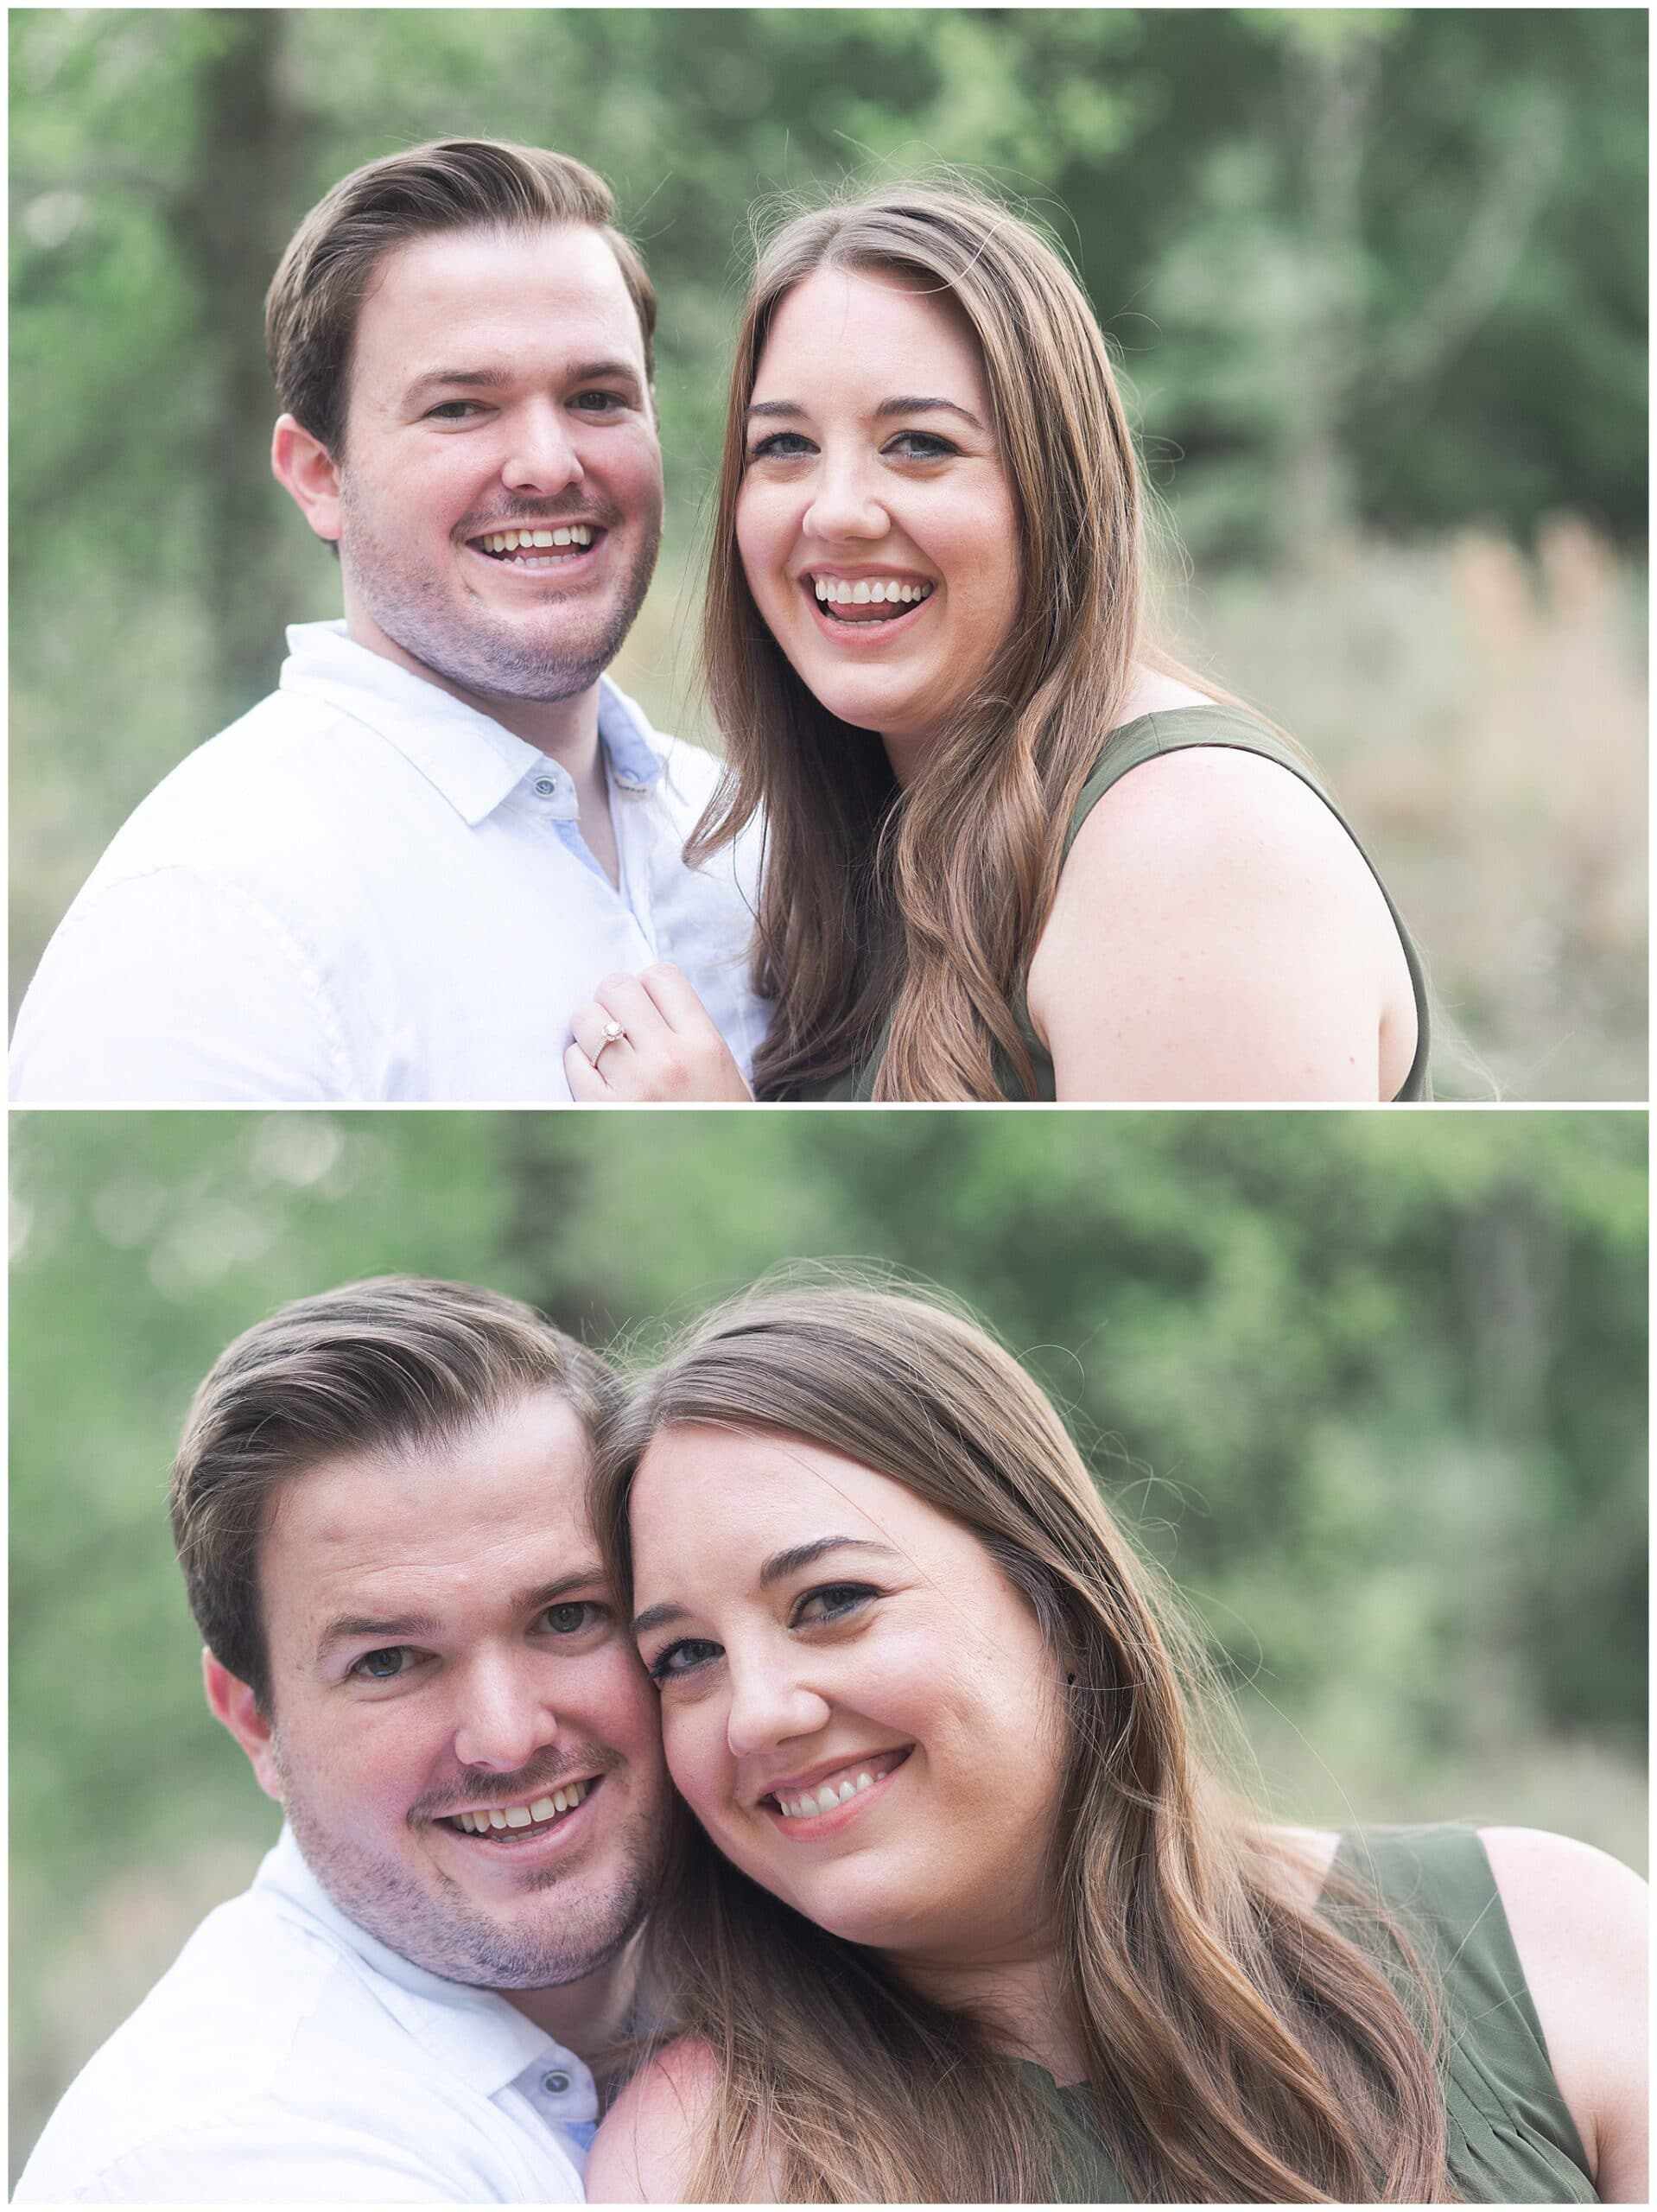 couple smiling in Houston Arboretum and Nature Center during their engagement session by Swish and Click Photography